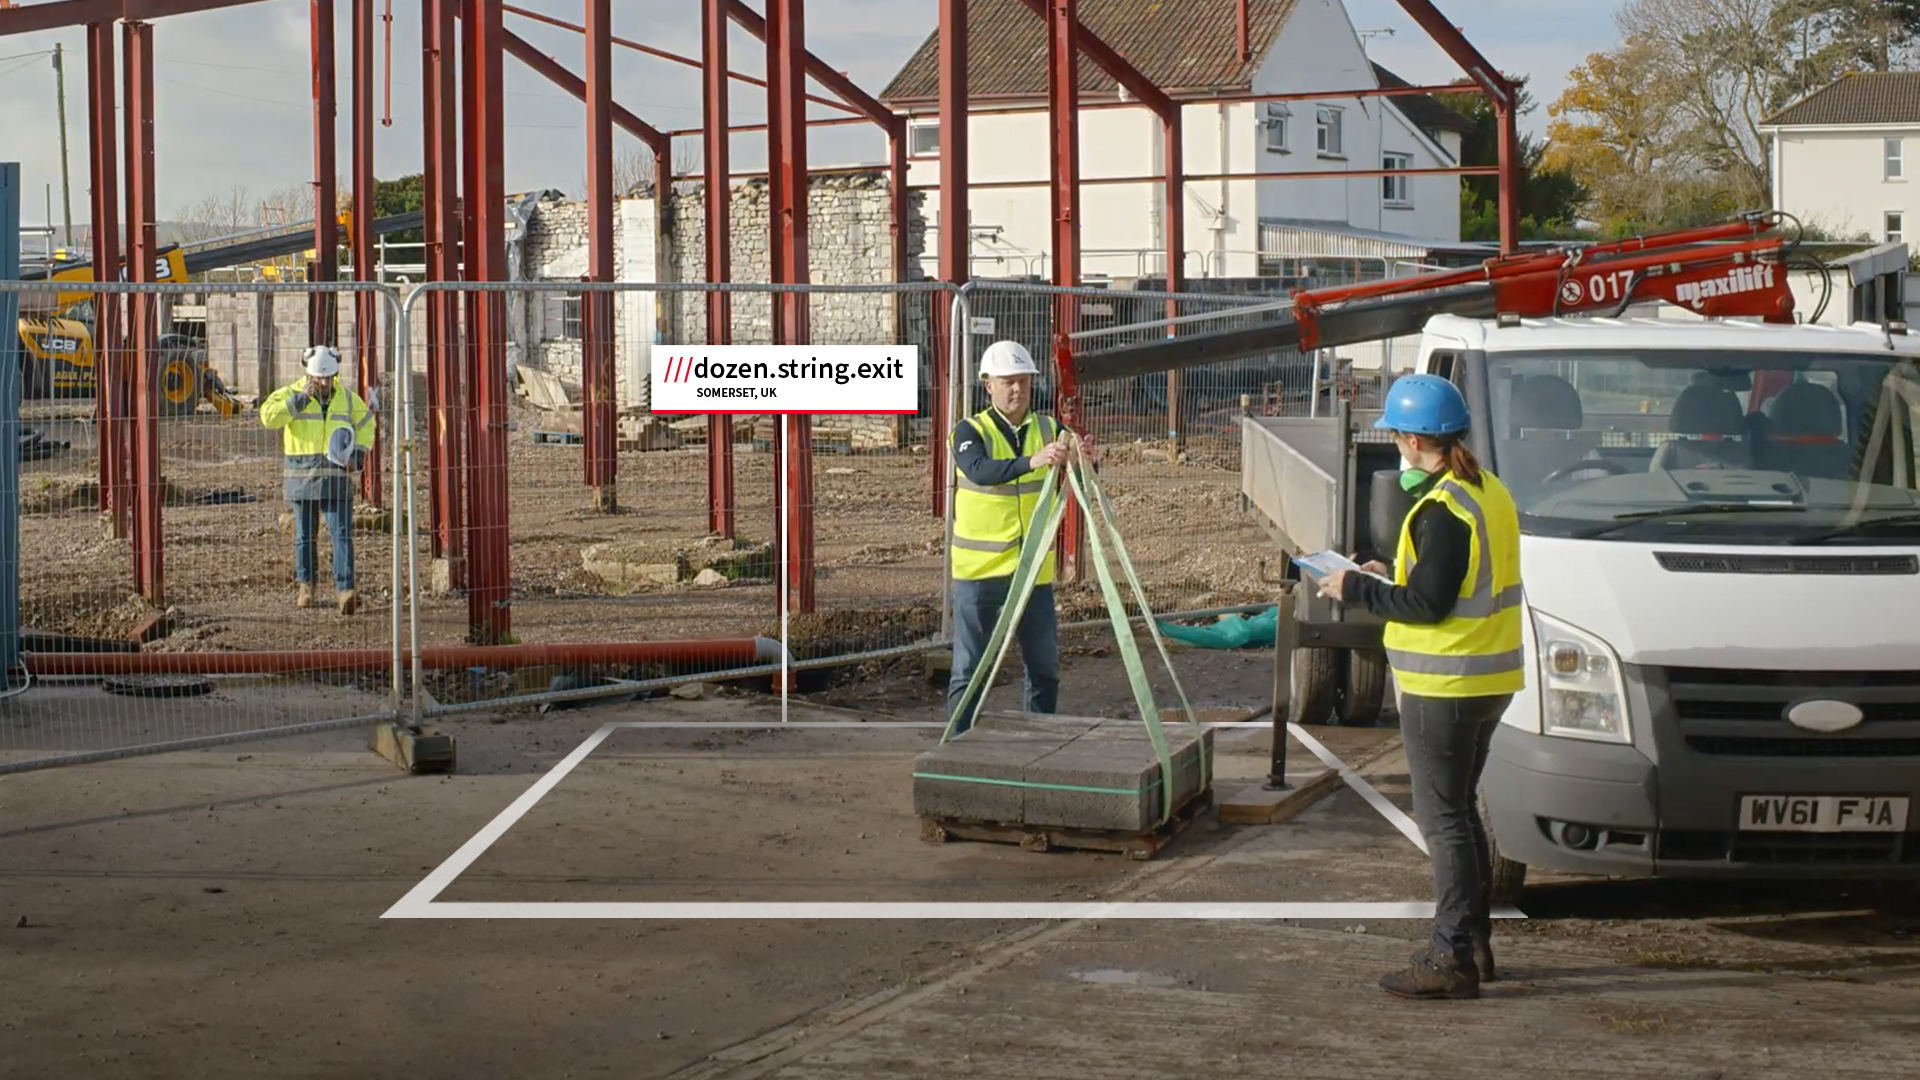 Builders working on construction site at what3words address dozen string exit